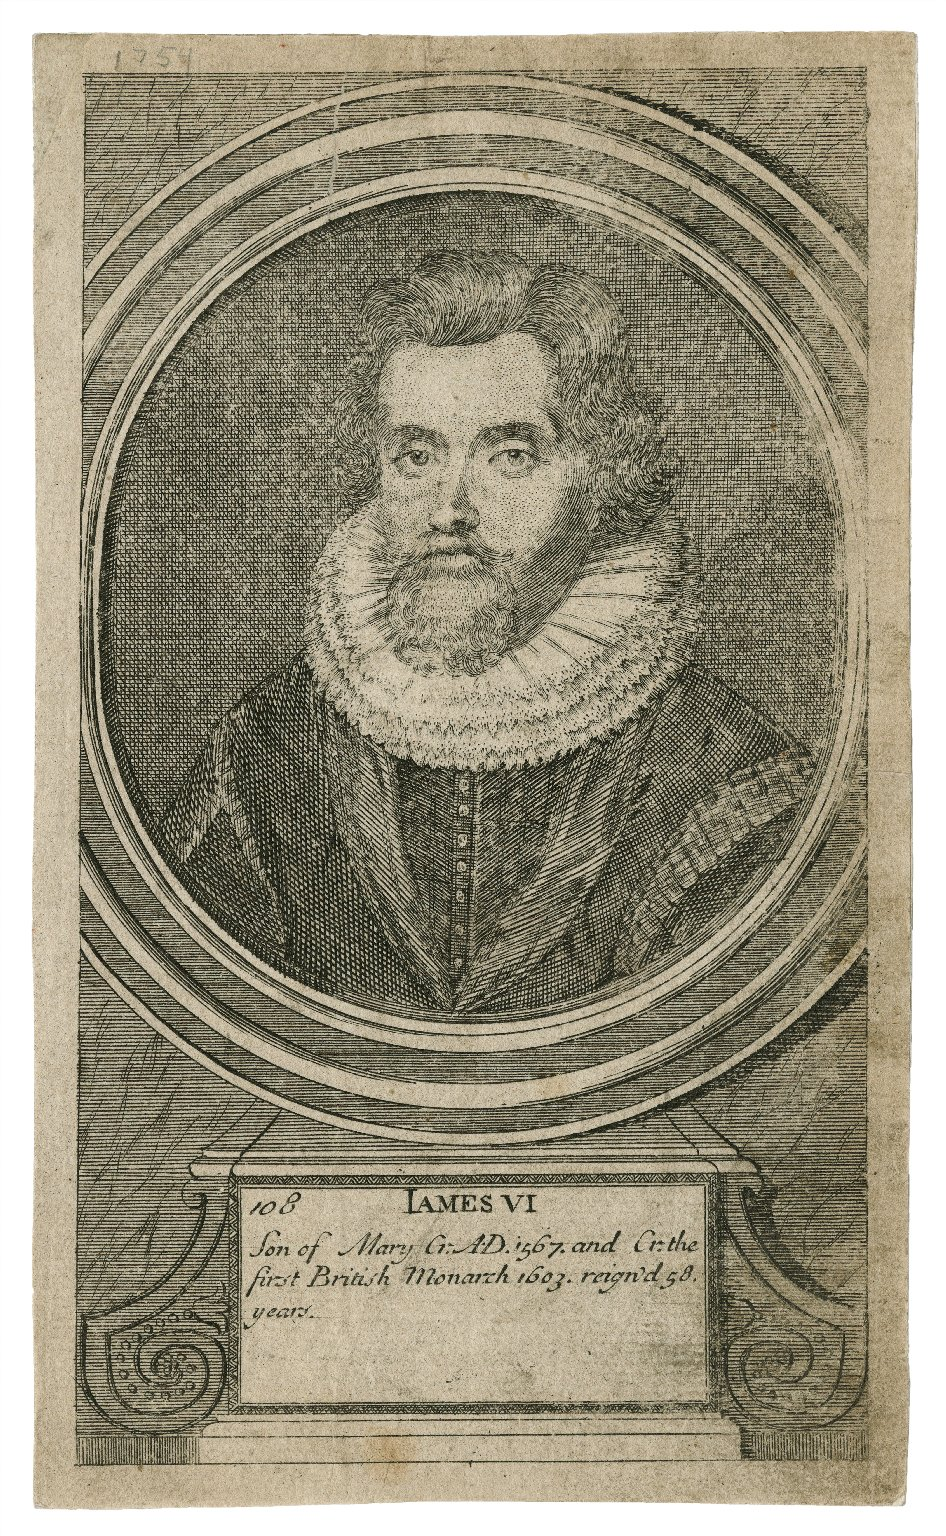 James VI, son of Mary Cr. A.D. 1567, and Cr. the first British monarch 1603, reign'd 58 years [graphic].